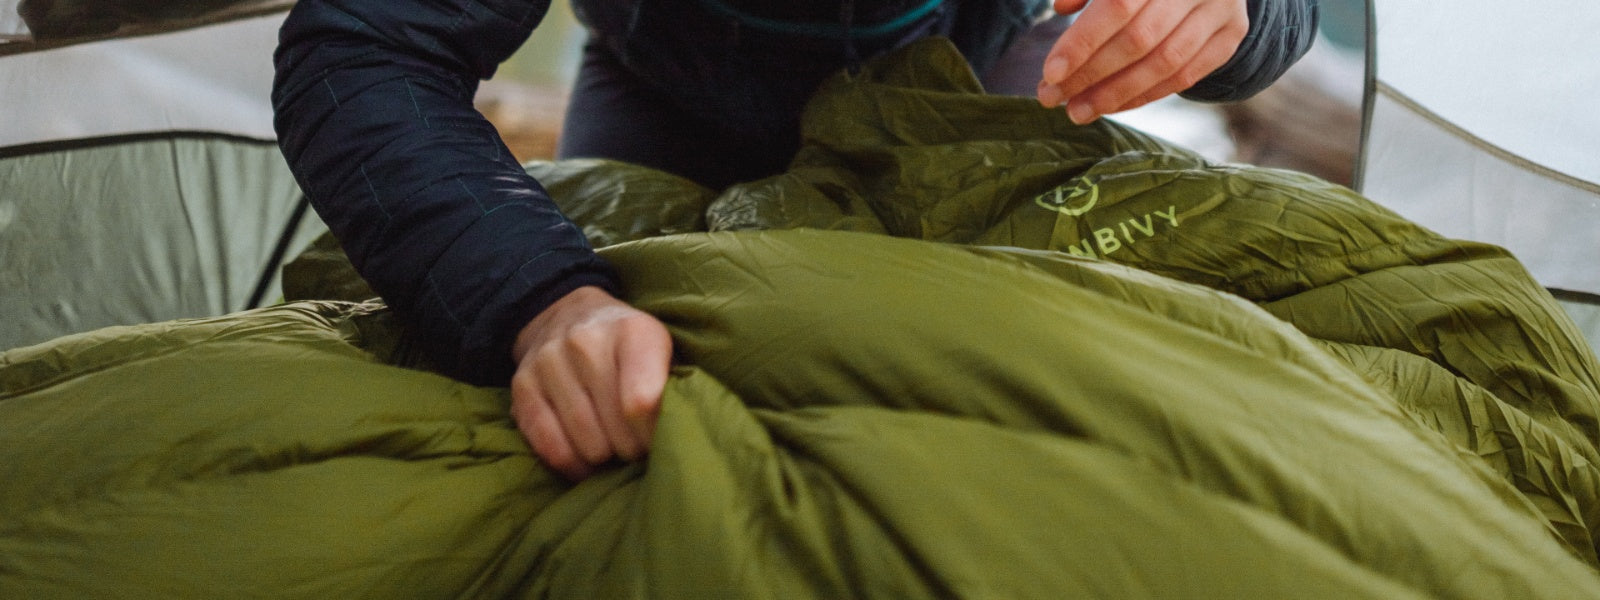 Conventional slippery, sticky, and tacky sleeping bag fabric didn't appeal to us... We wanted to elevate your camping experience and give you something better.